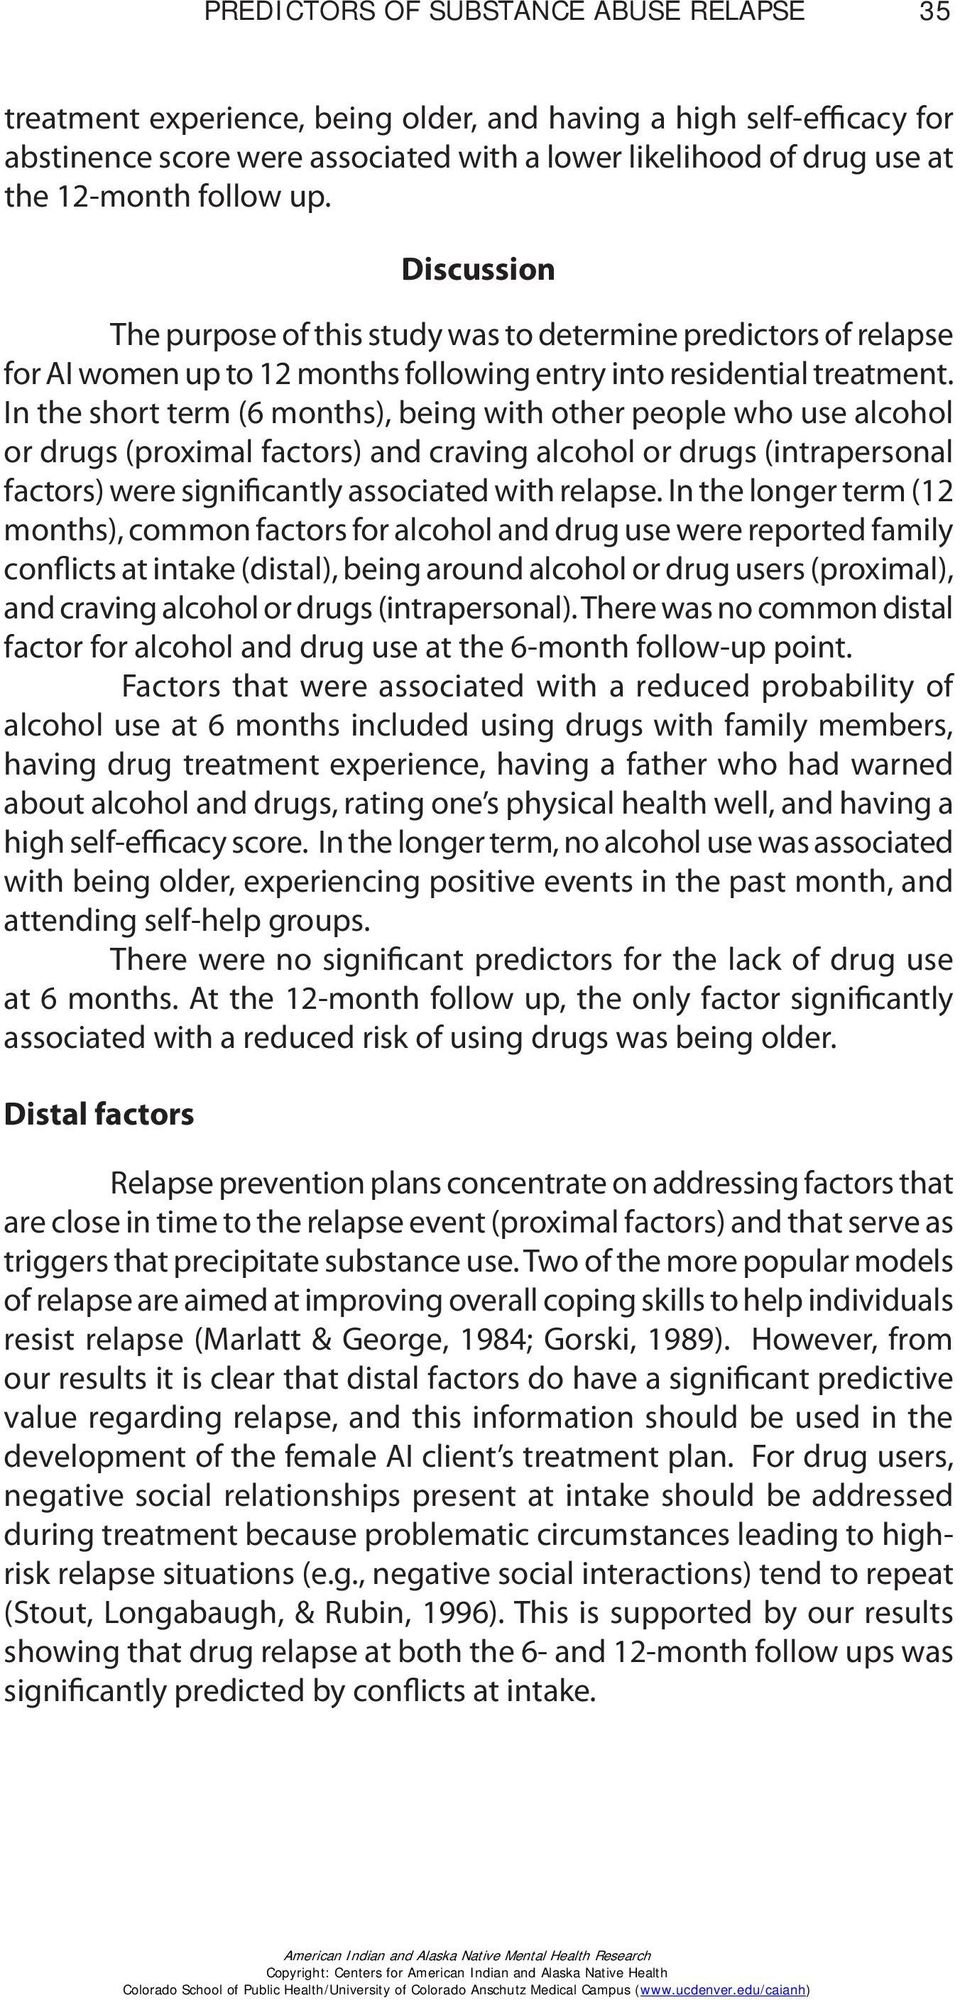 In the short term (6 months), being with other people who use alcohol or drugs (proximal factors) and craving alcohol or drugs (intrapersonal factors) were significantly associated with relapse.